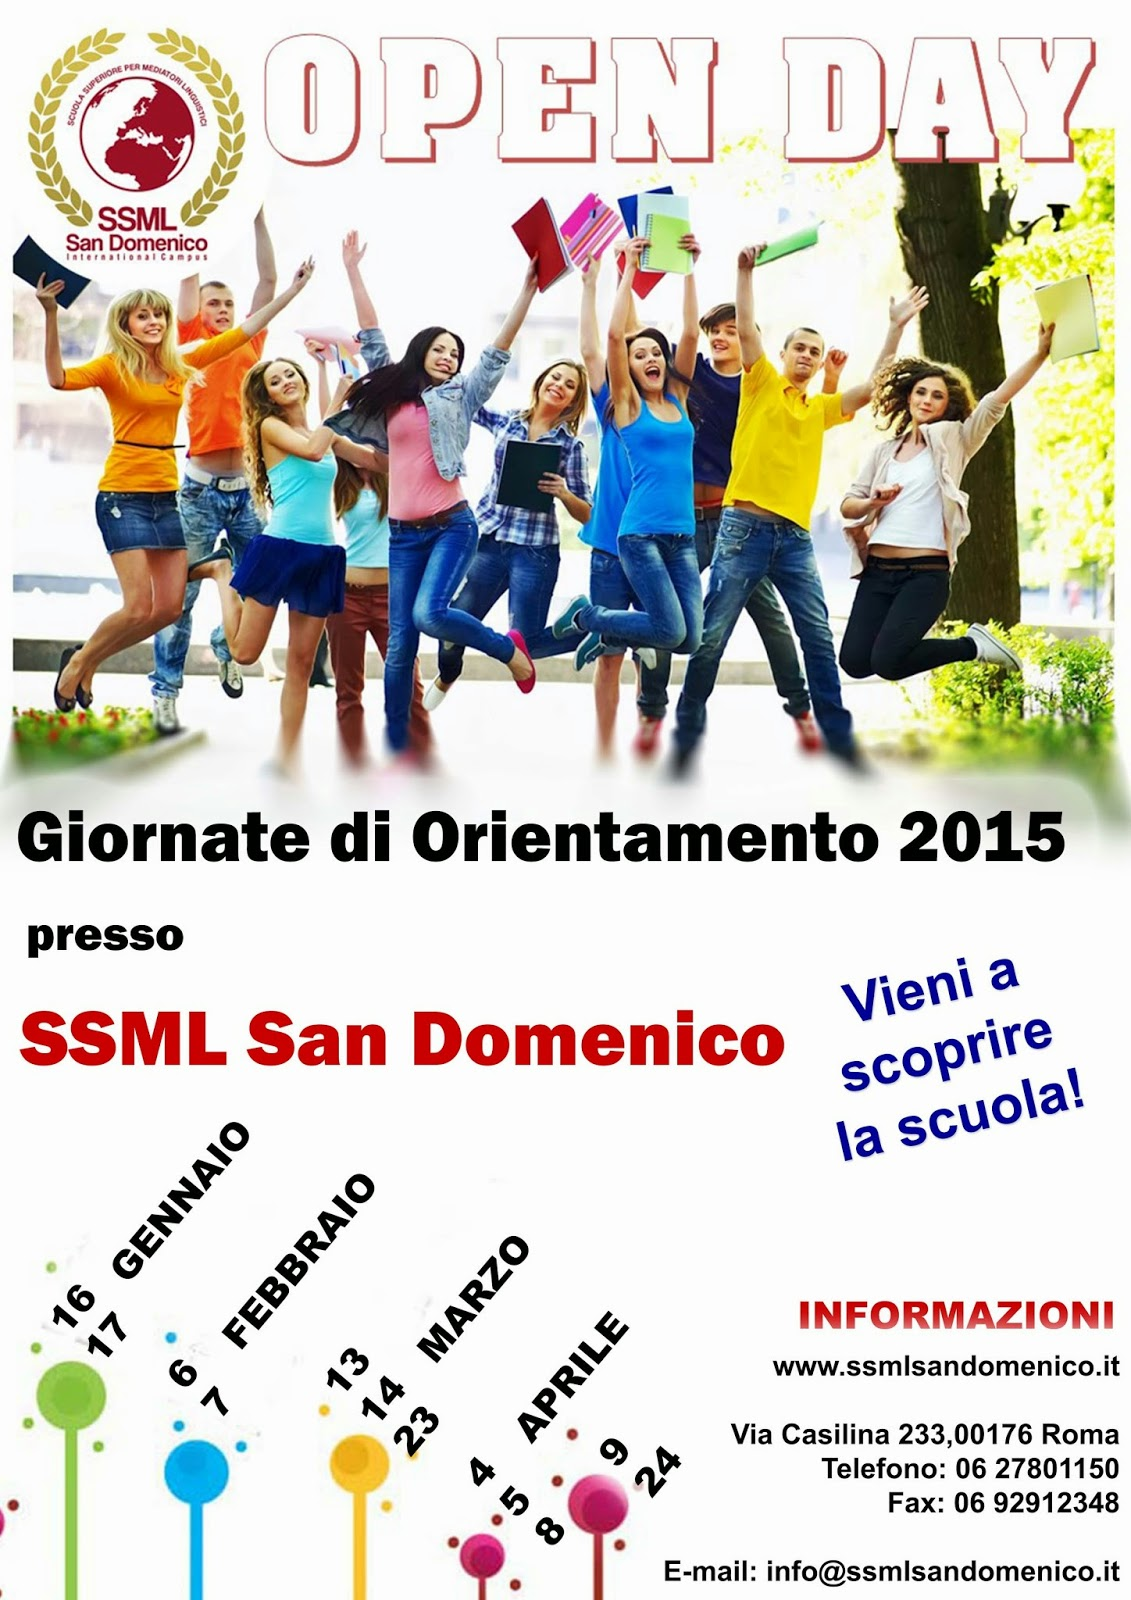 http://www.ssmlsandomenico.it/home/open-day-2015